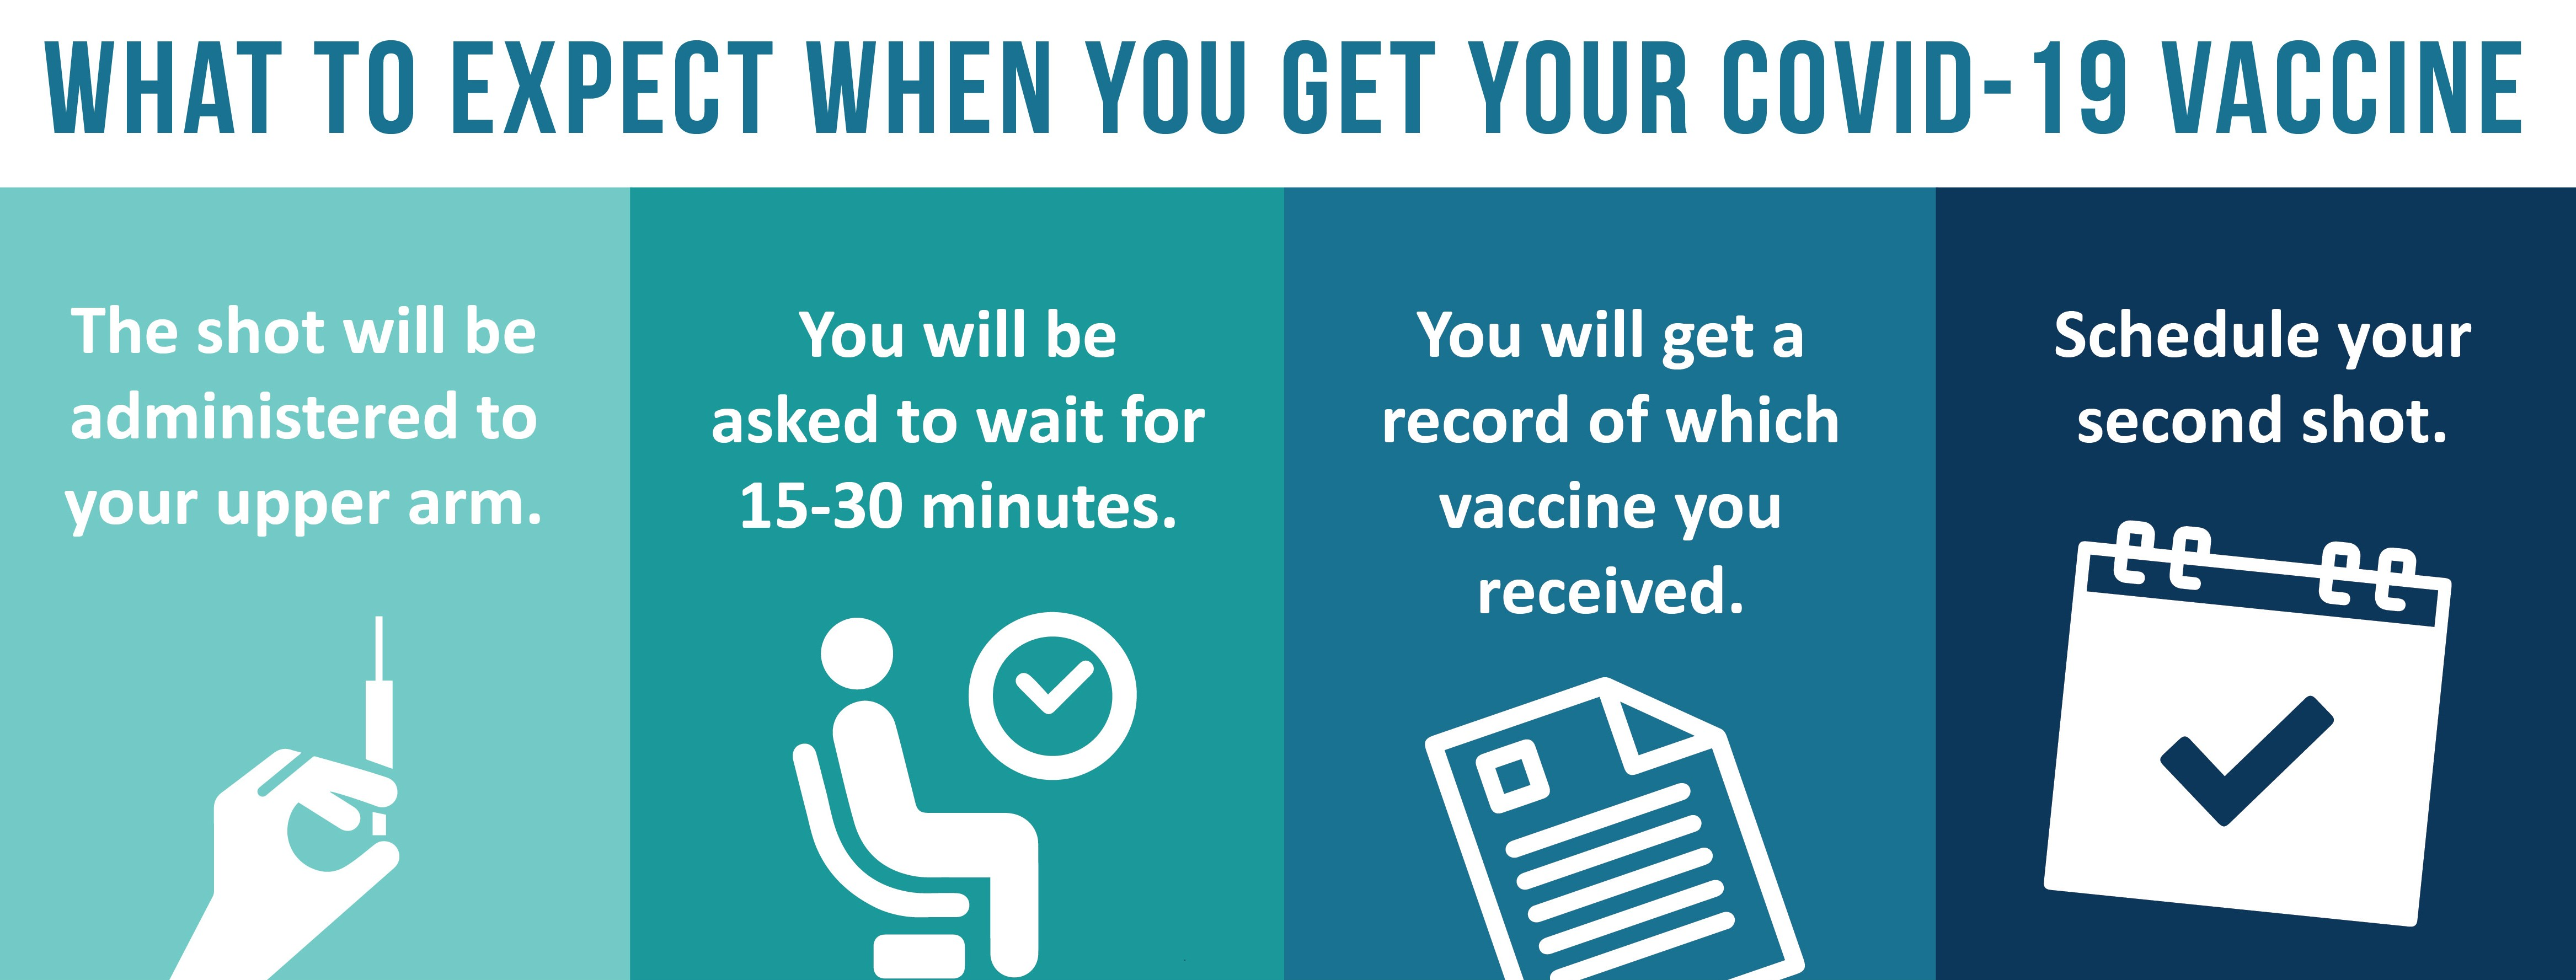 what to expect with COVID-19 vaccine